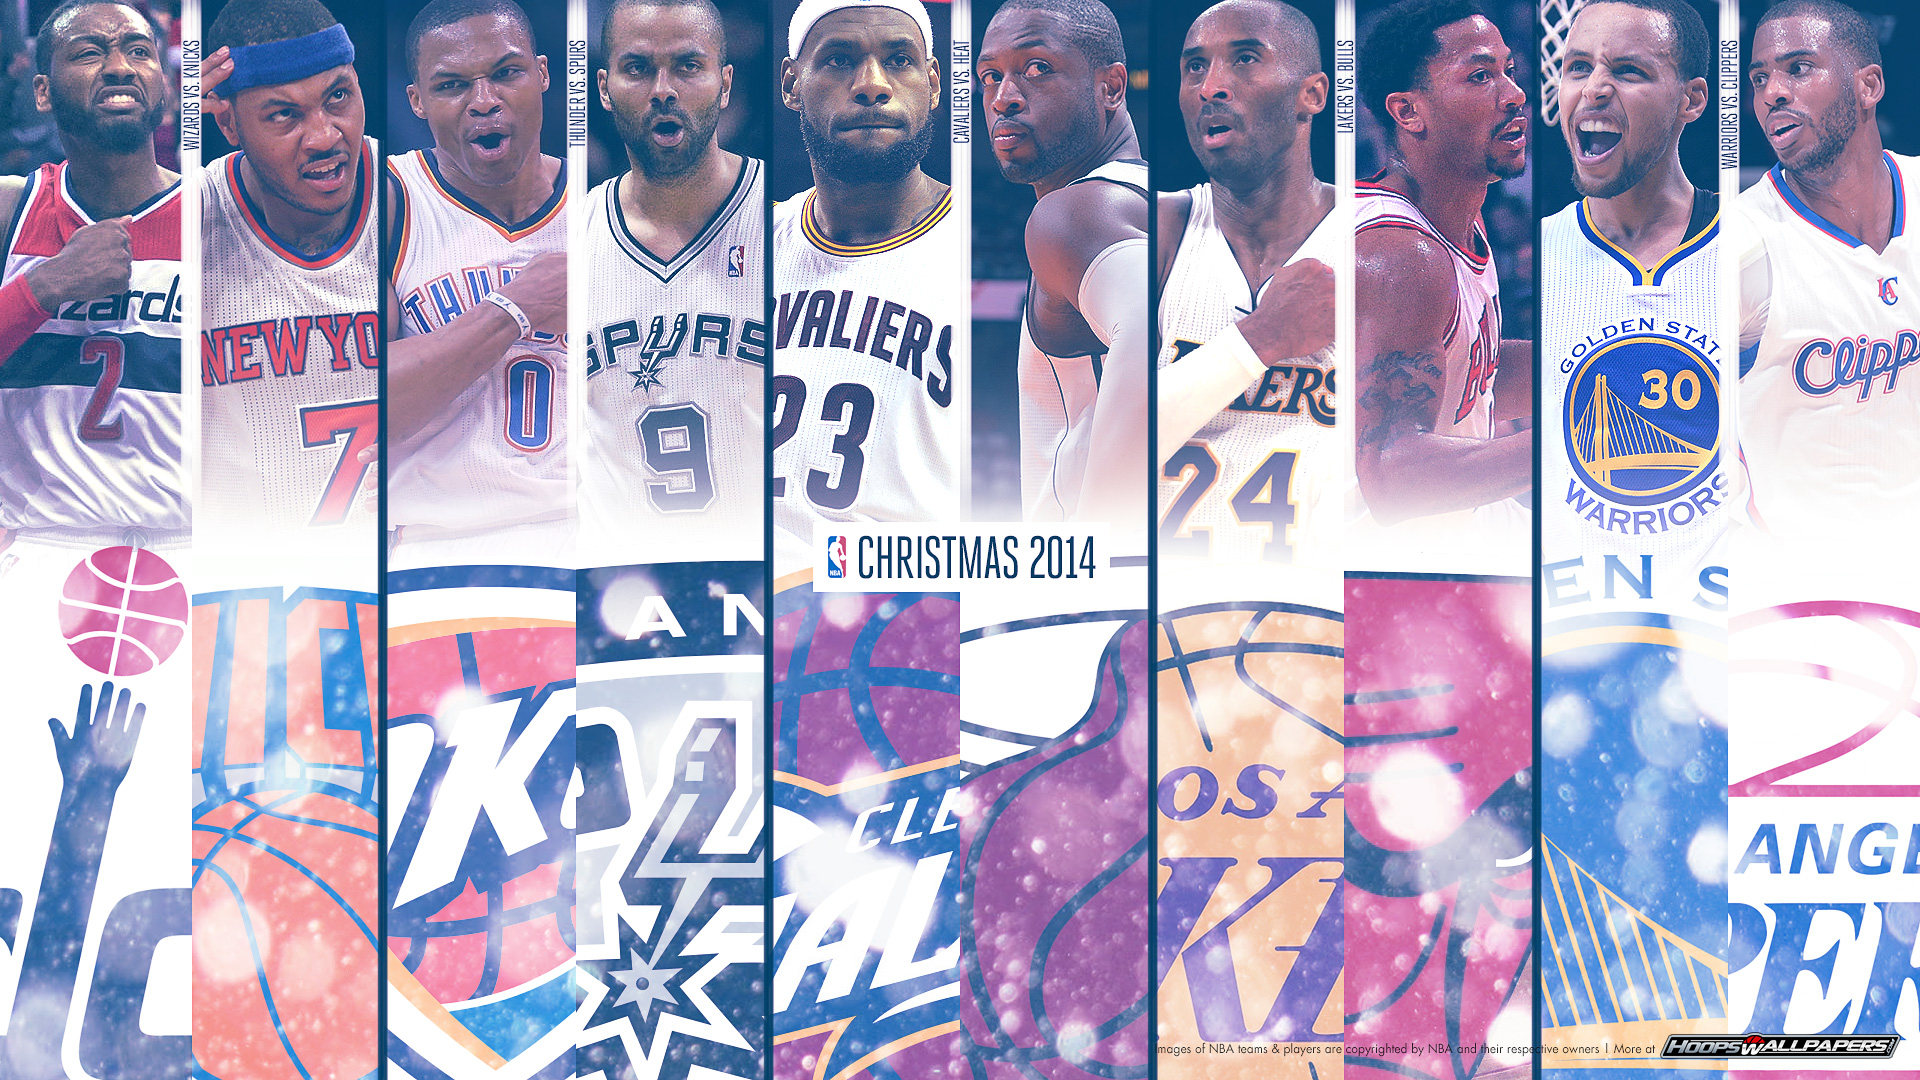 NBA wallpapers at HoopsWallpaperscom Newest NBA and basketball 1920x1080